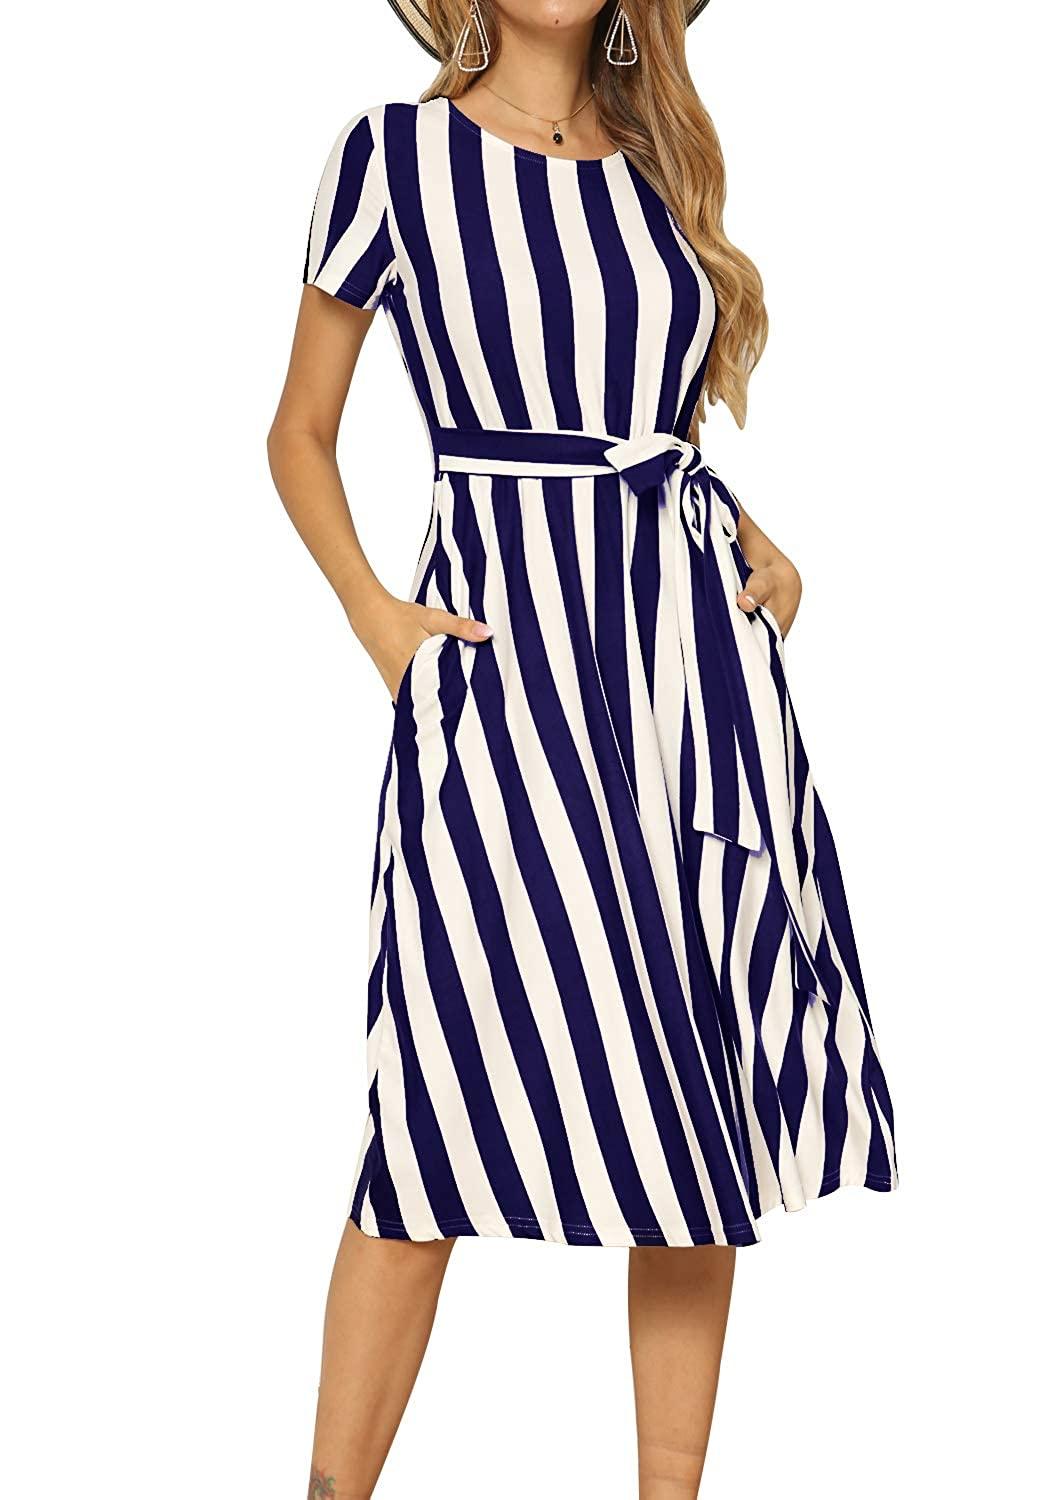 Sailor Dresses, Nautical Theme Dress, WW2 Dresses levaca Womens Short Sleeve Striped Casual Flowy Midi Belt Dress with Pockets $25.99 AT vintagedancer.com